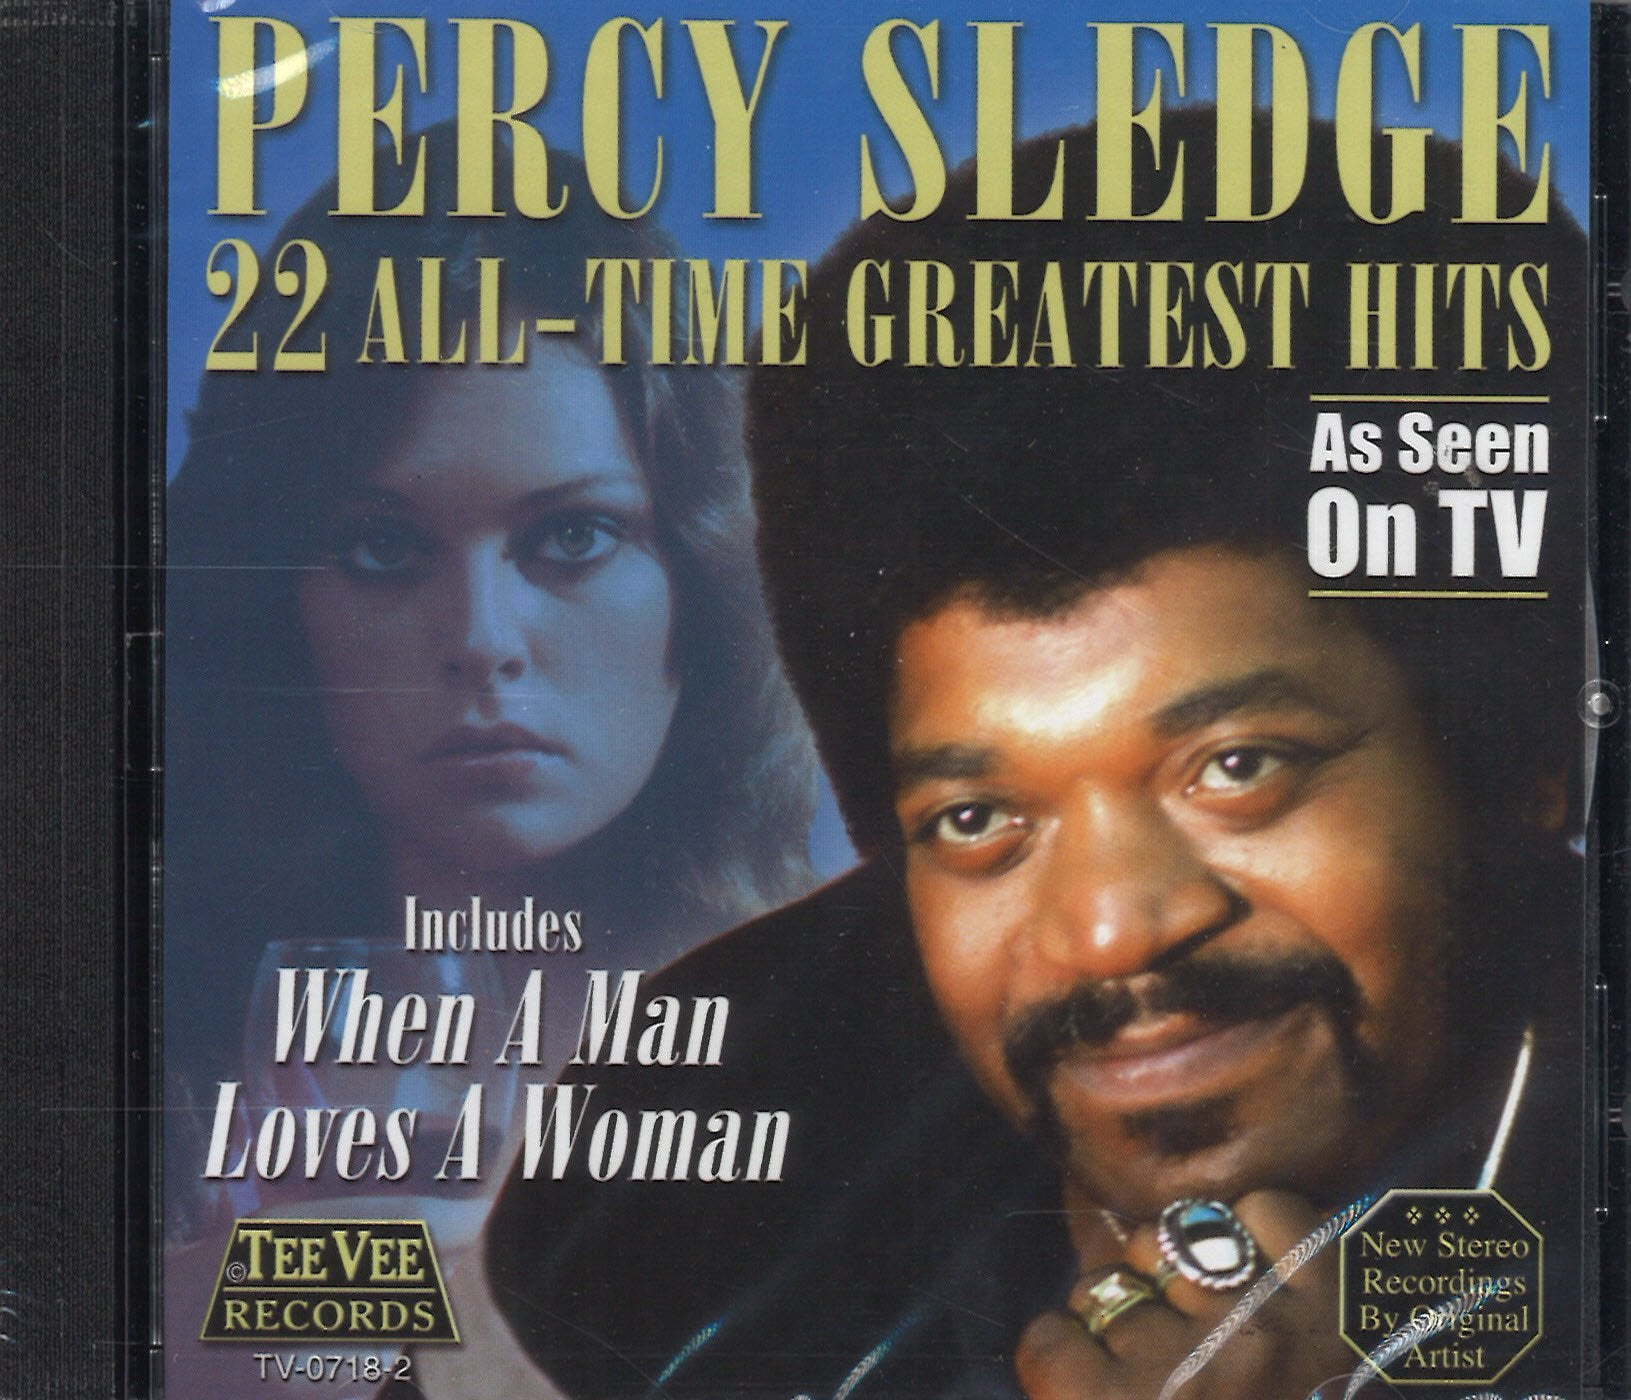 Percy Sledge 22 All-Time Greatest Hits